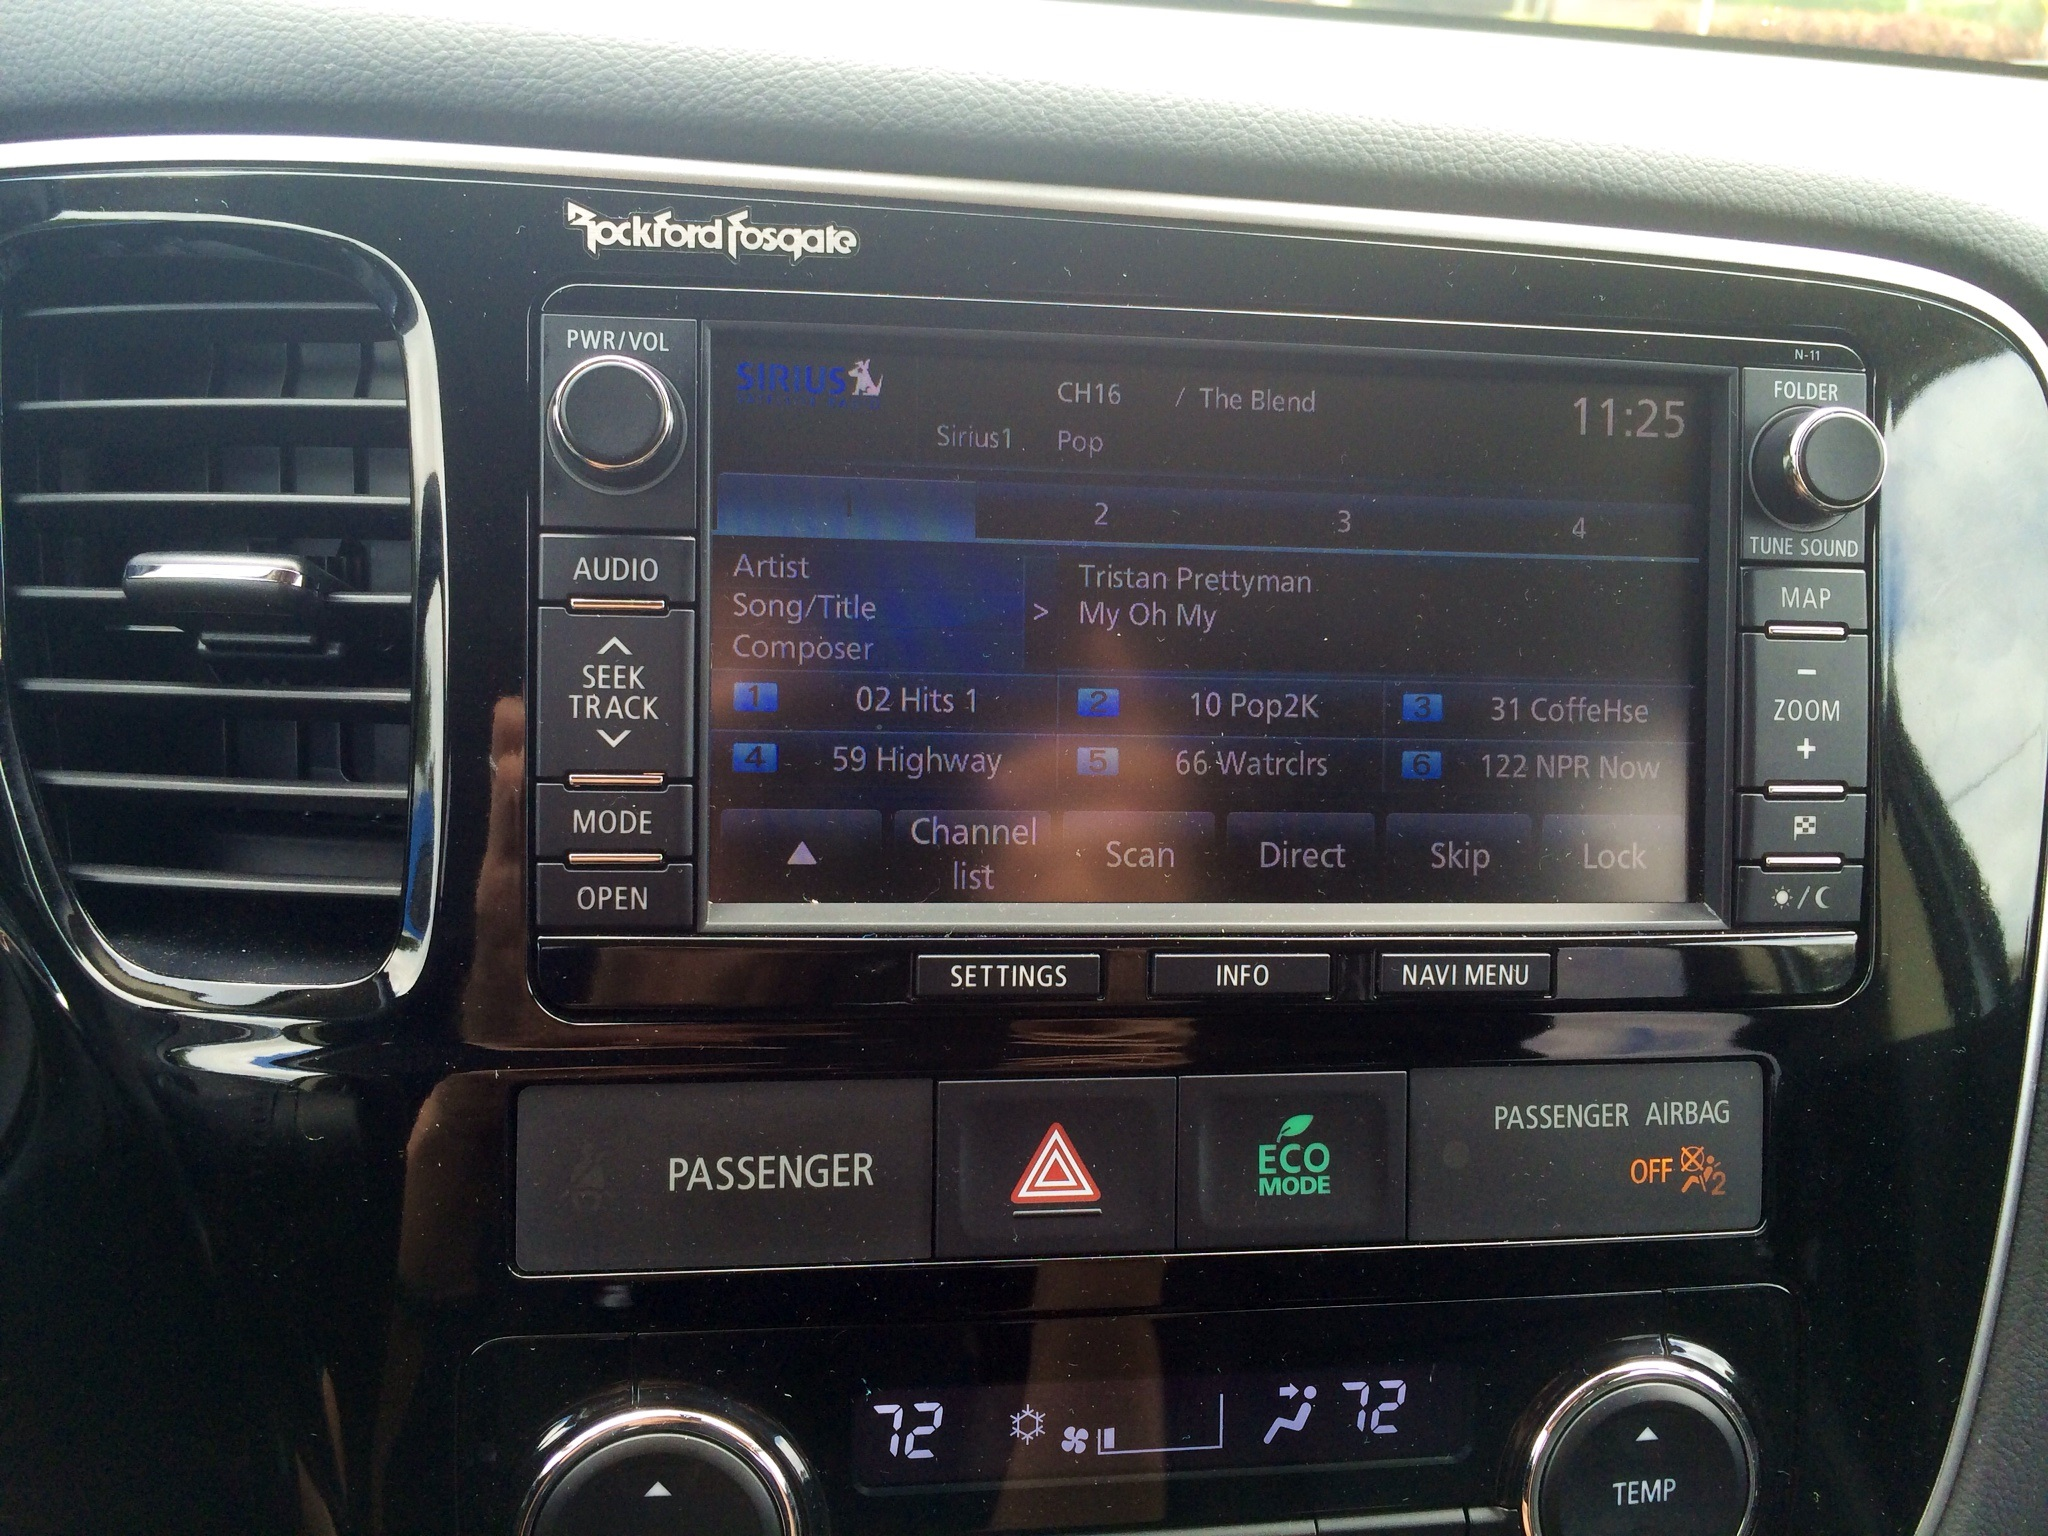 Excellent climate control features. Plus, a three-month Sirius radio trial.